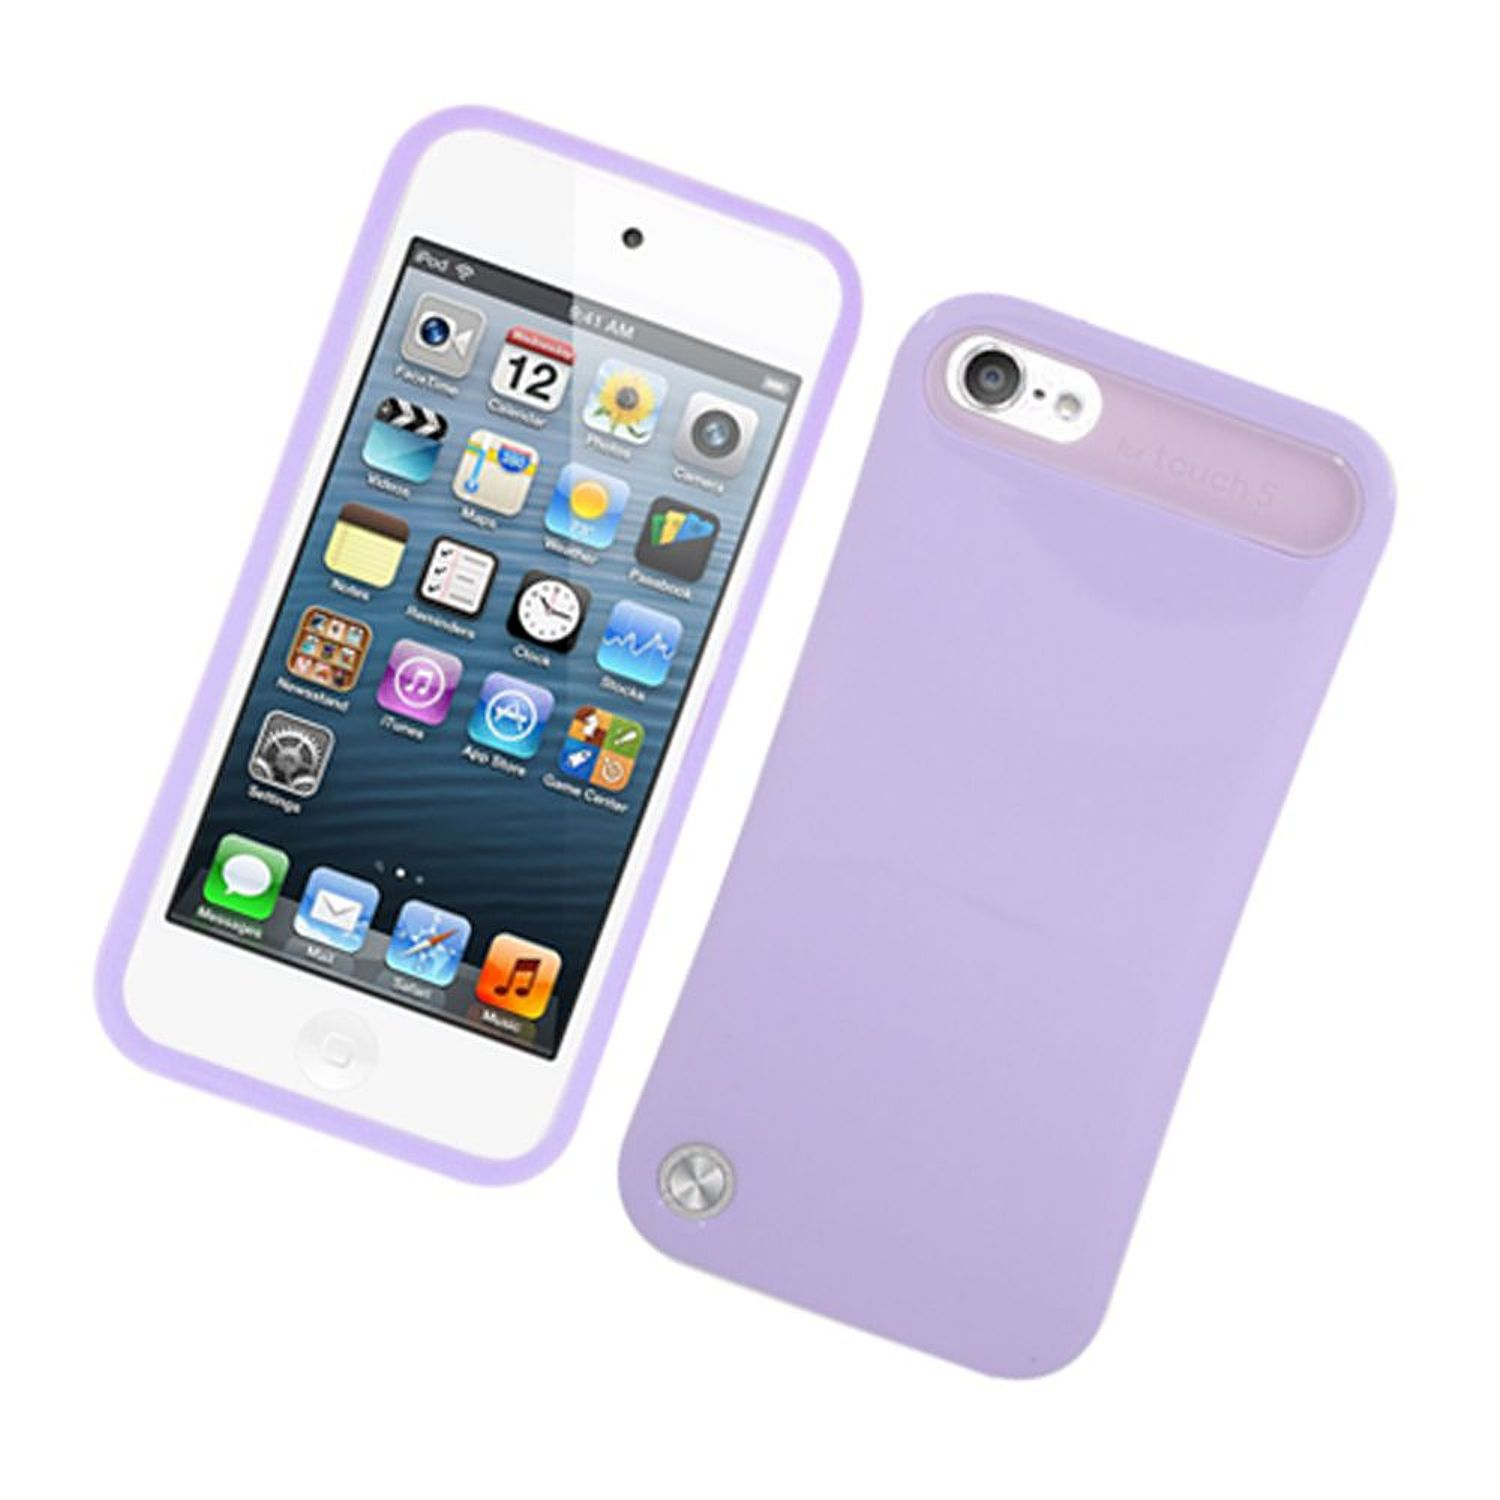 iPod Touch 6th generation case, iPod Touch 5th generation case, by Insten Night Glow Jelly Hard Plastic/Soft Silicone Case Cover For Apple iPod Touch 6th / 5th Gen, Purple